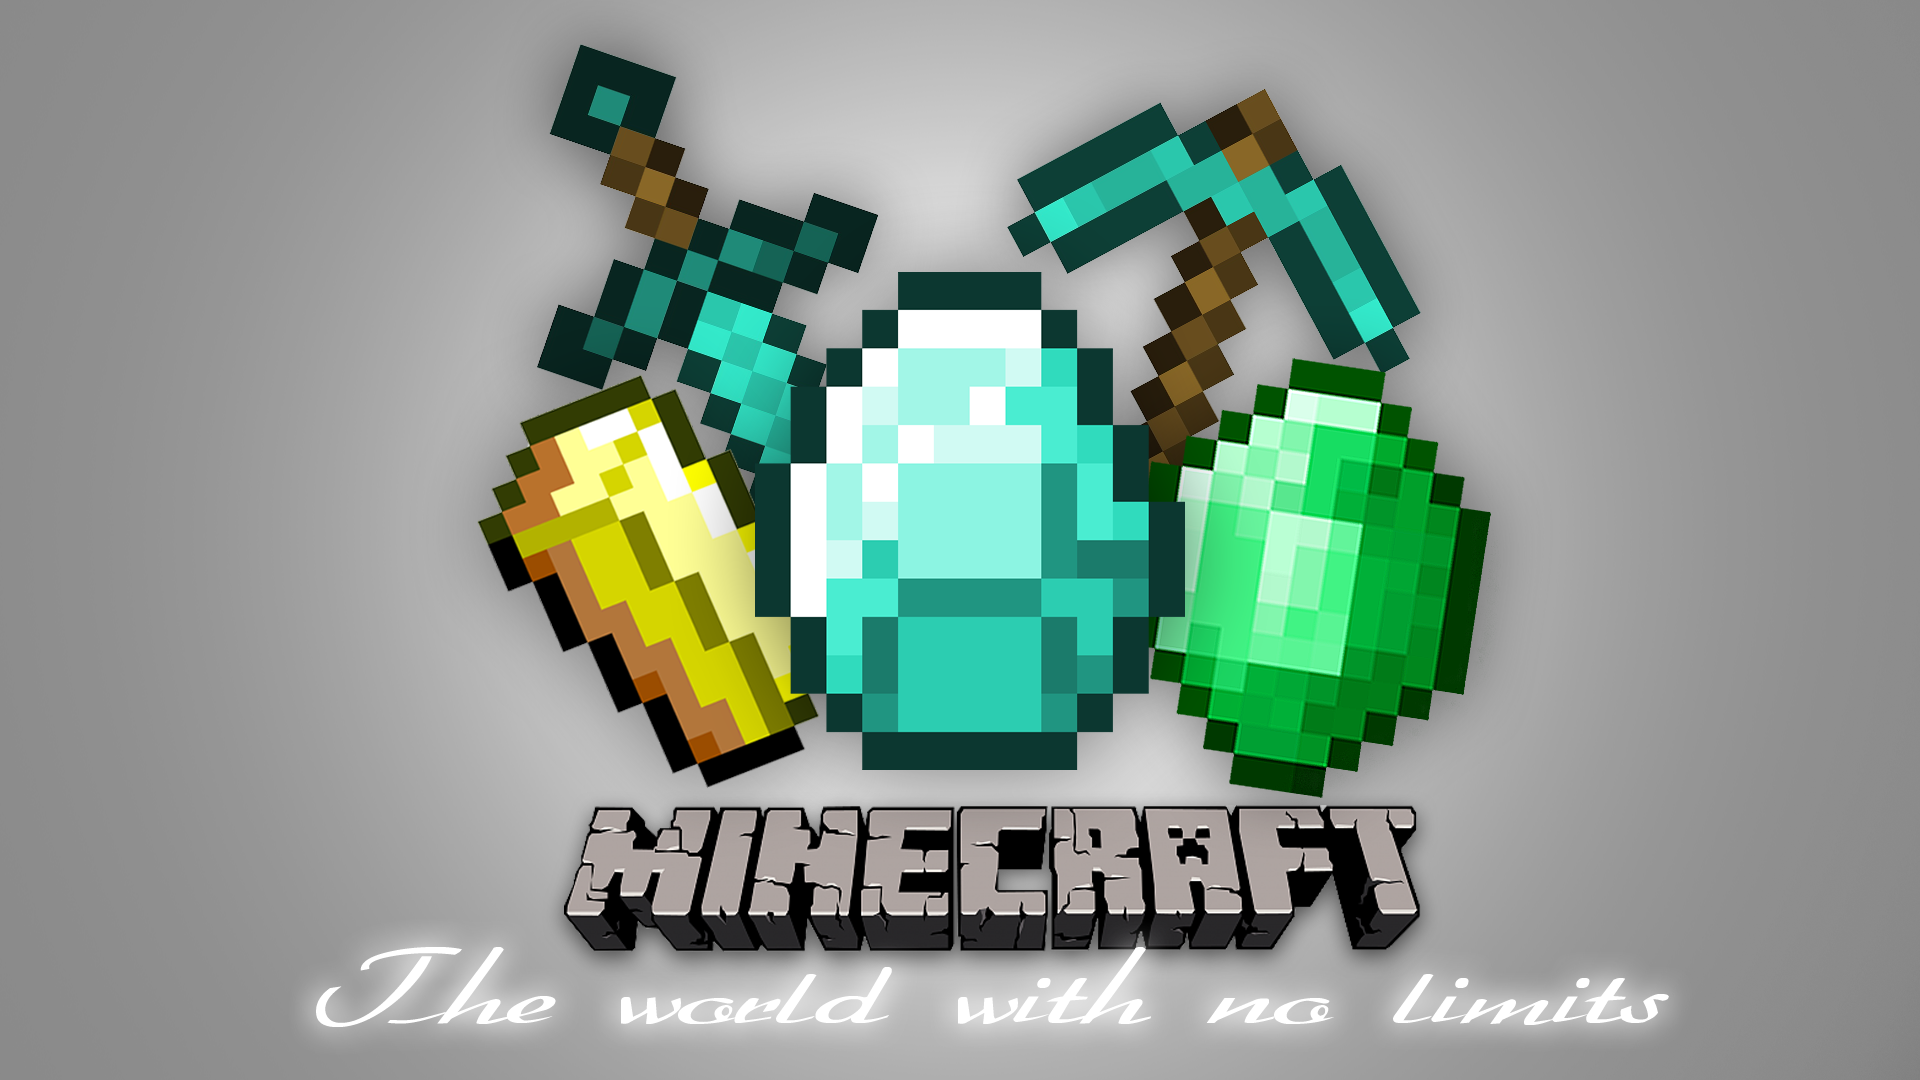 Epic Minecraft Wallpapers 1920x1080